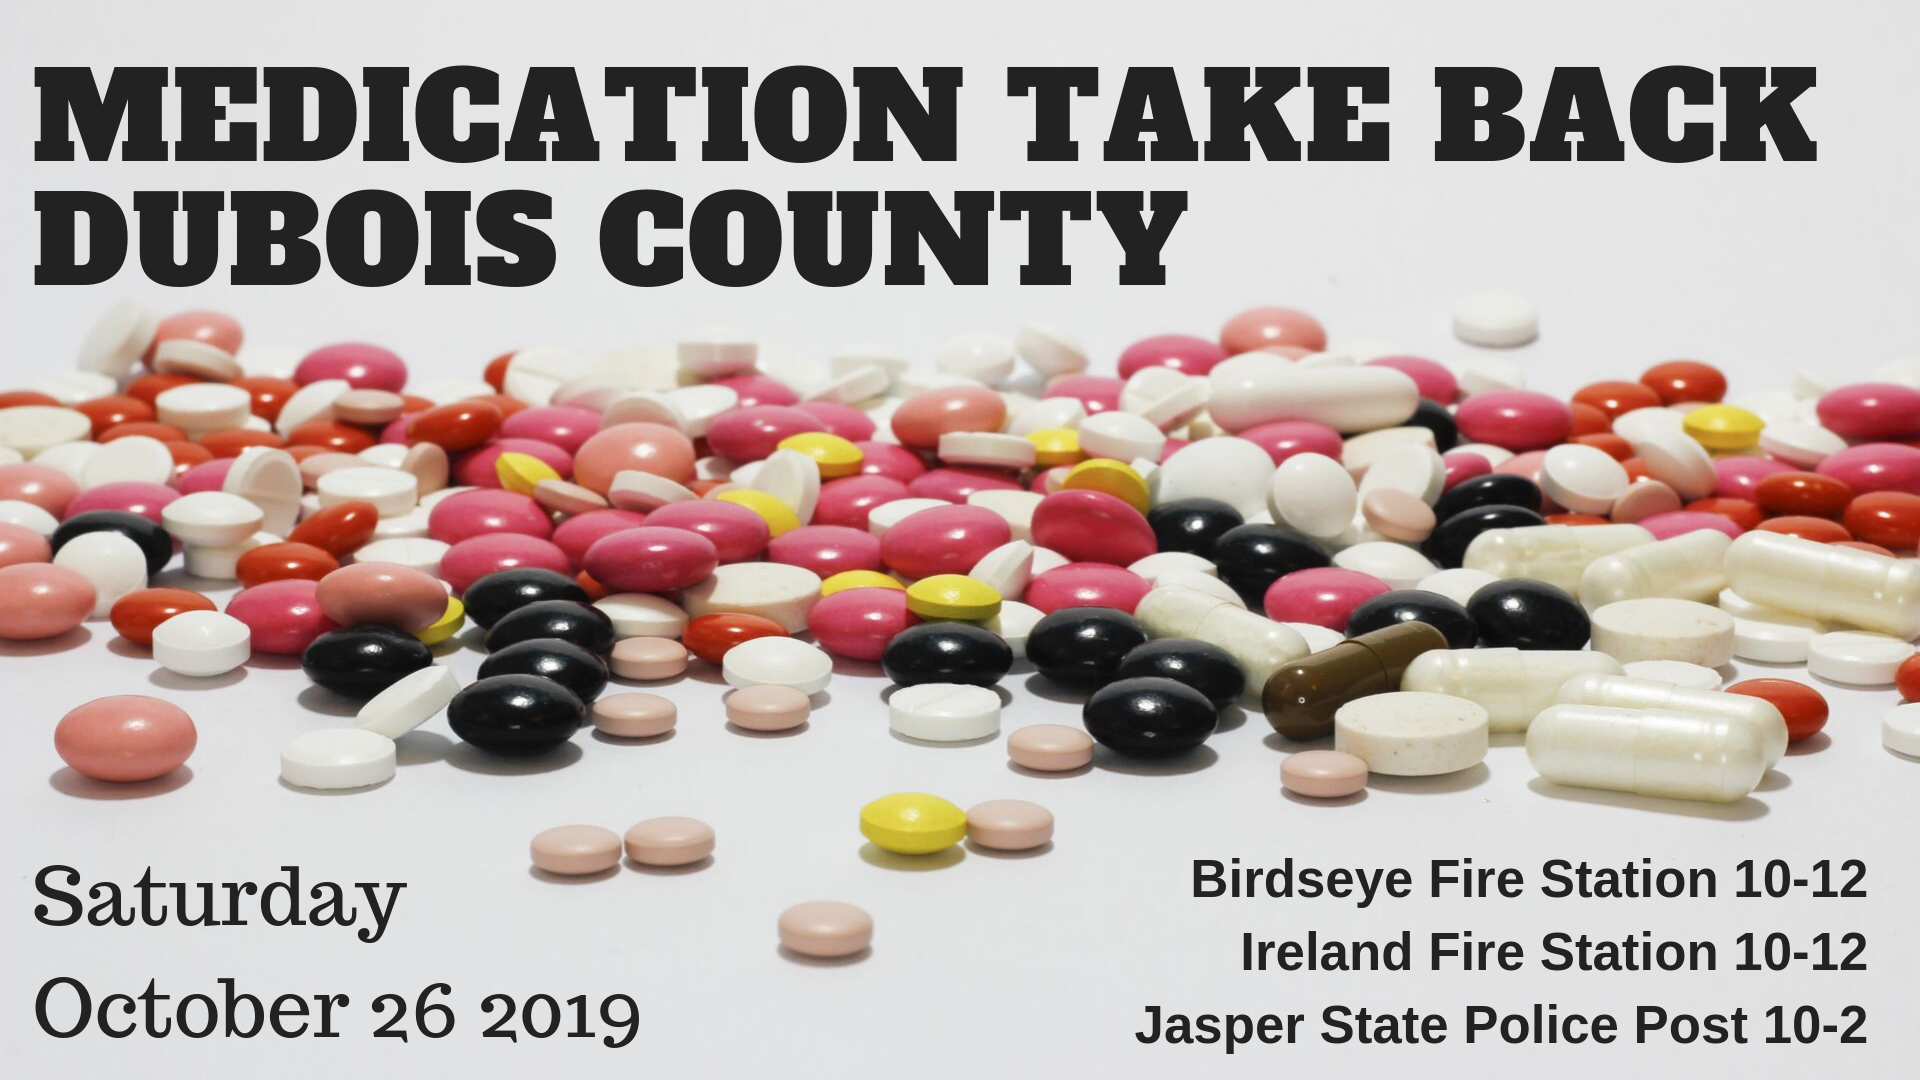 Dubois County Officials Will Host Annual Medication Take Back Event in October